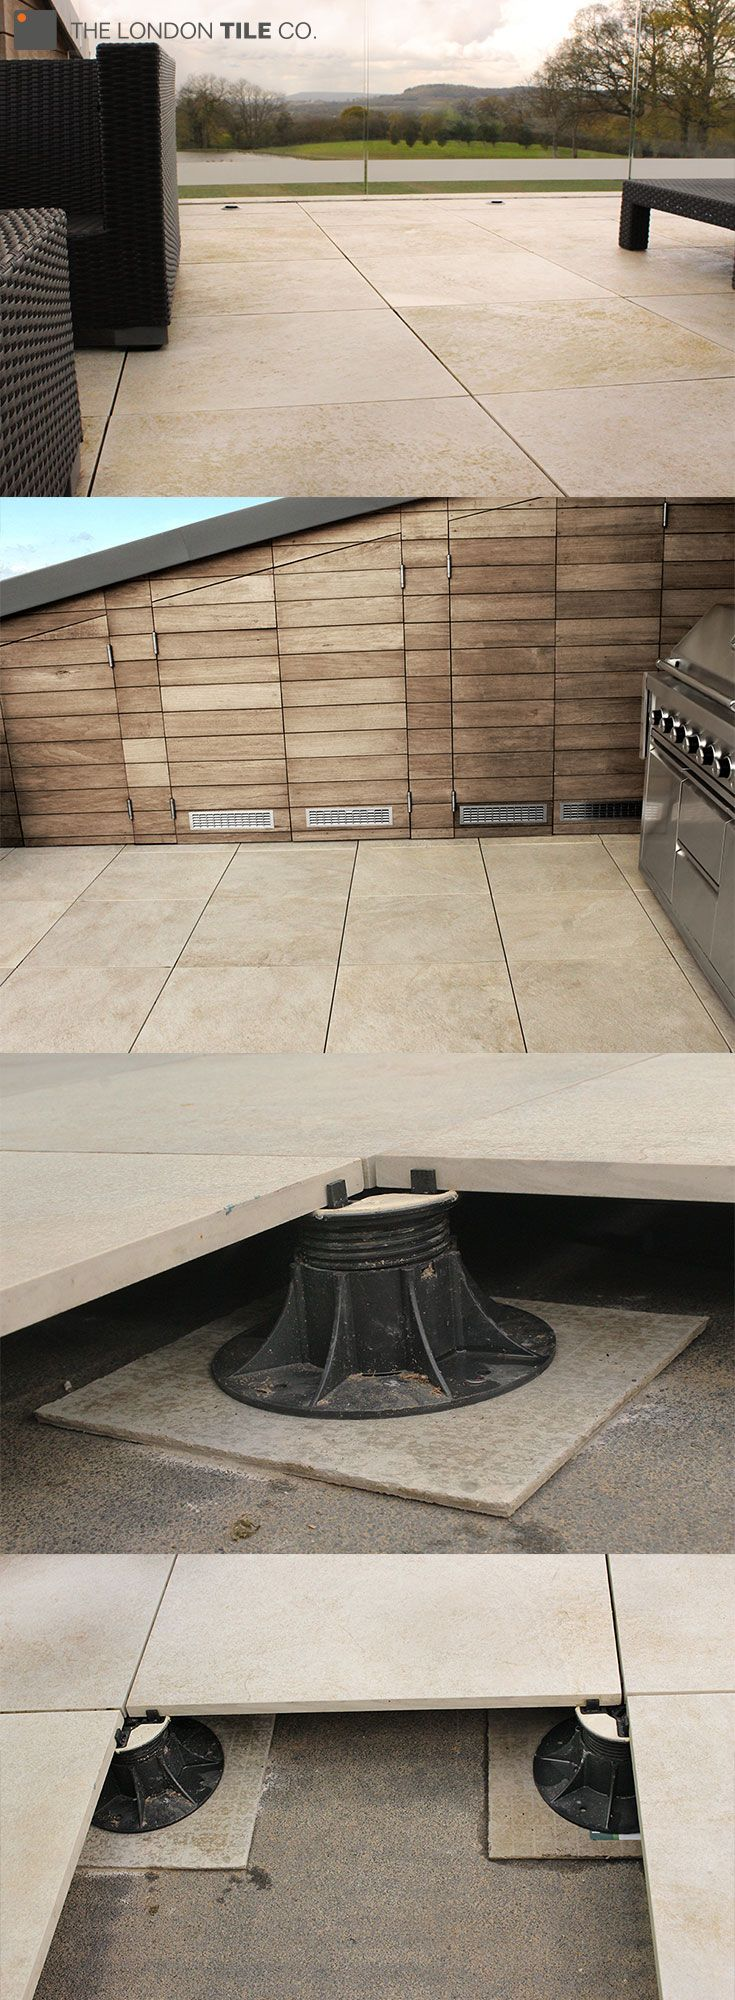 This stunning roof terrace was created using Valverdi 20mm thick outdoor  porcelain tiles and Eterno IvicaThis stunning roof terrace was created using Valverdi 20mm thick  . Porcelain Tiles For External Use. Home Design Ideas